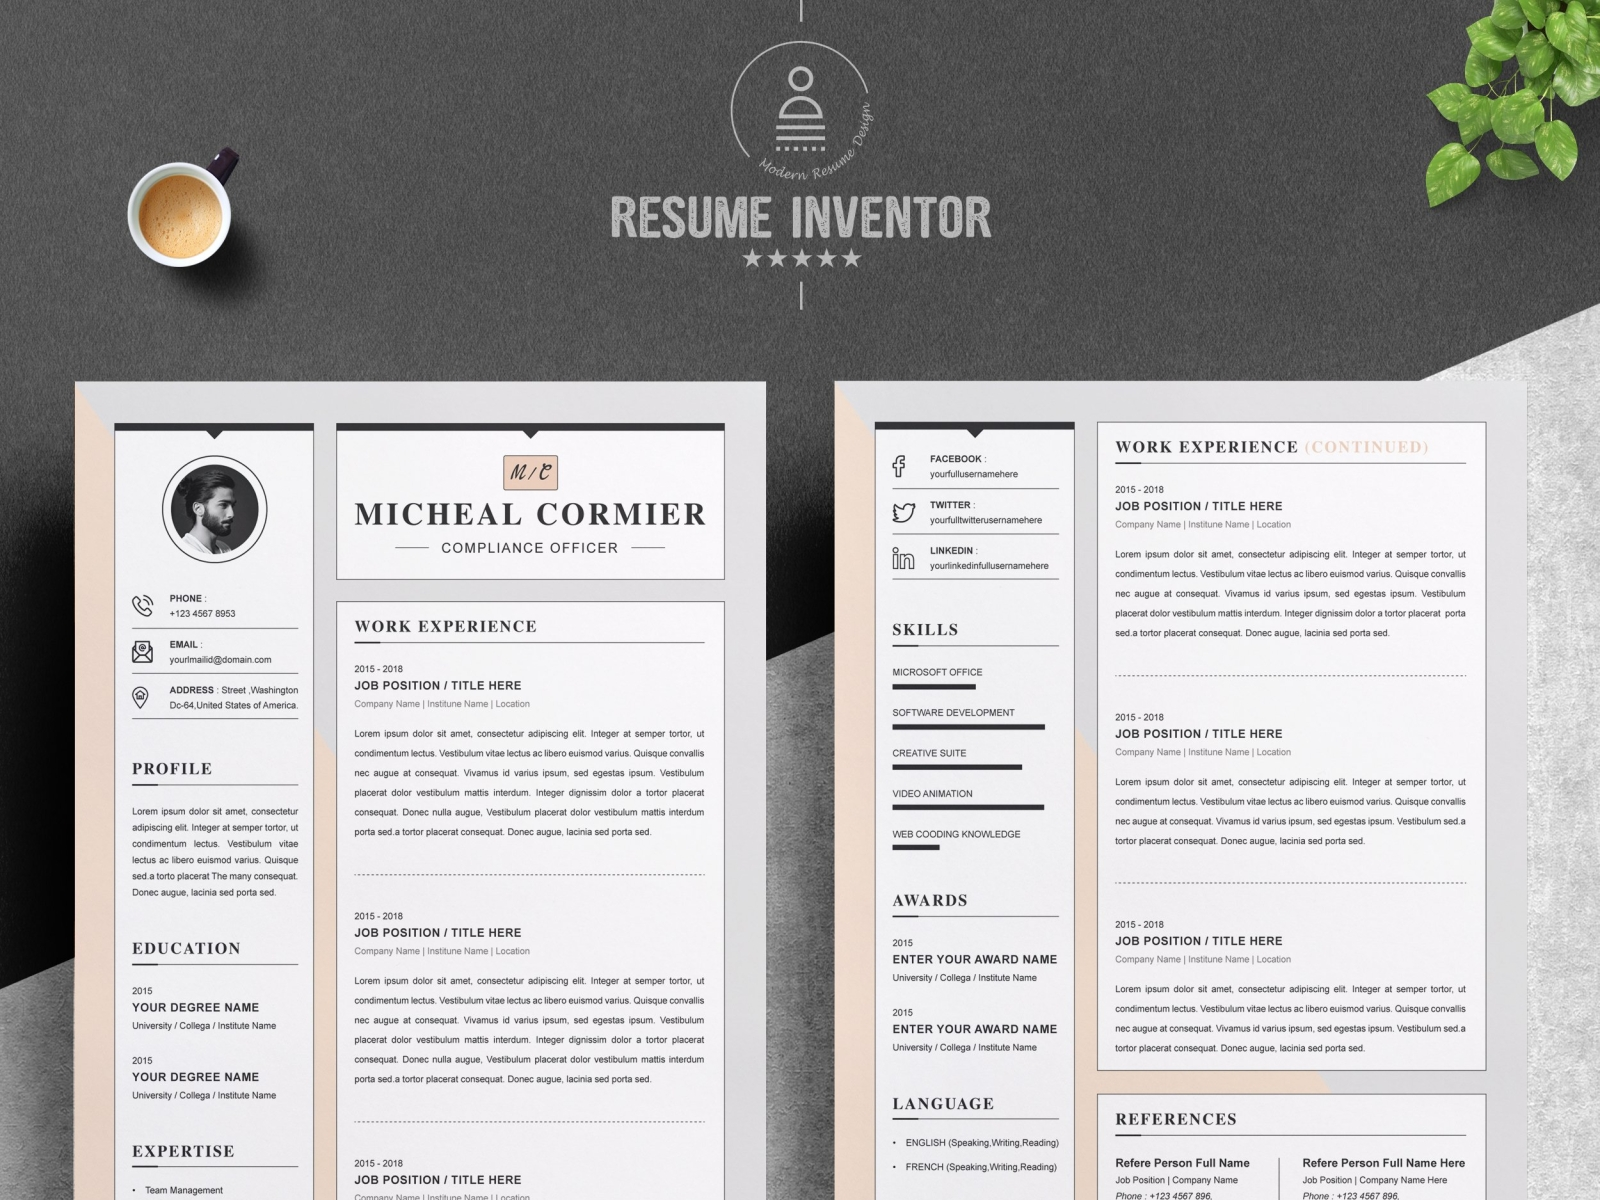 Free apple pages resume template with minimalist design for your next job opportunity. Word Resume Template Apple Pages Cv By Resume Templates On Dribbble